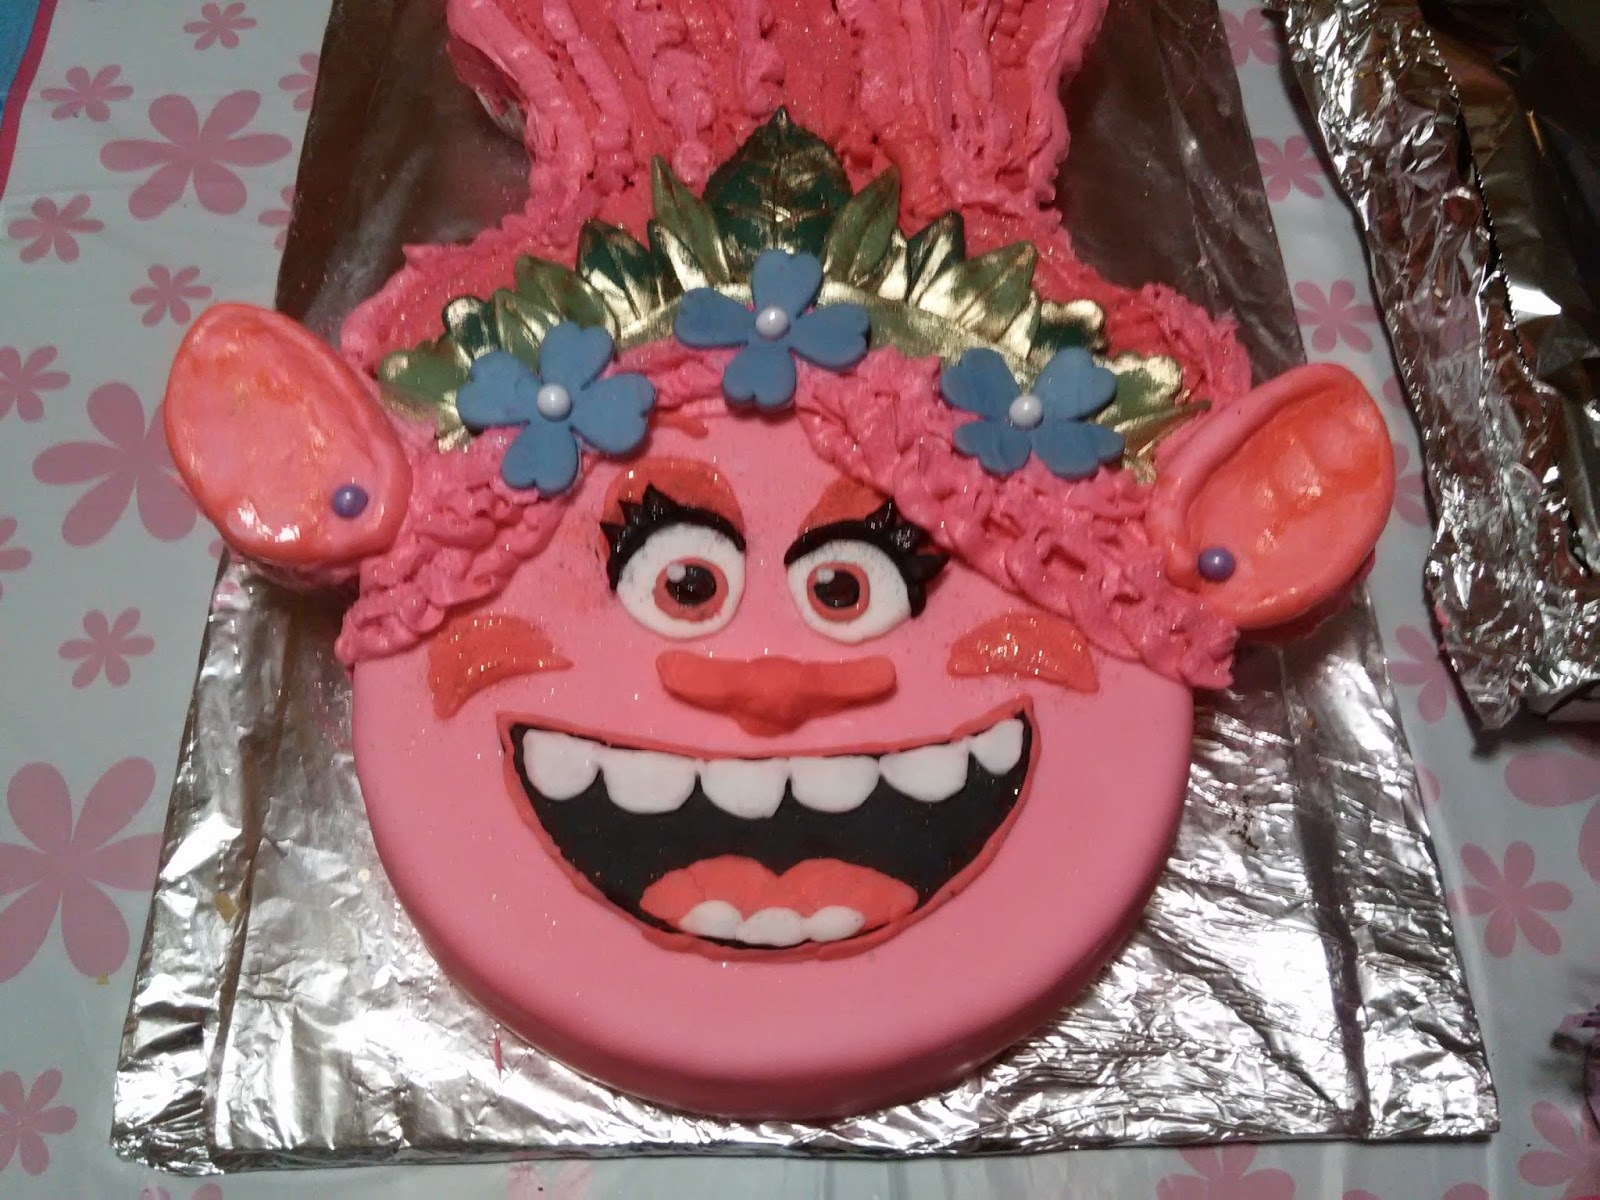 Birthday Cakes Nashville Tn ~ Pull apart troll birthday cake turning my hidden passion into a